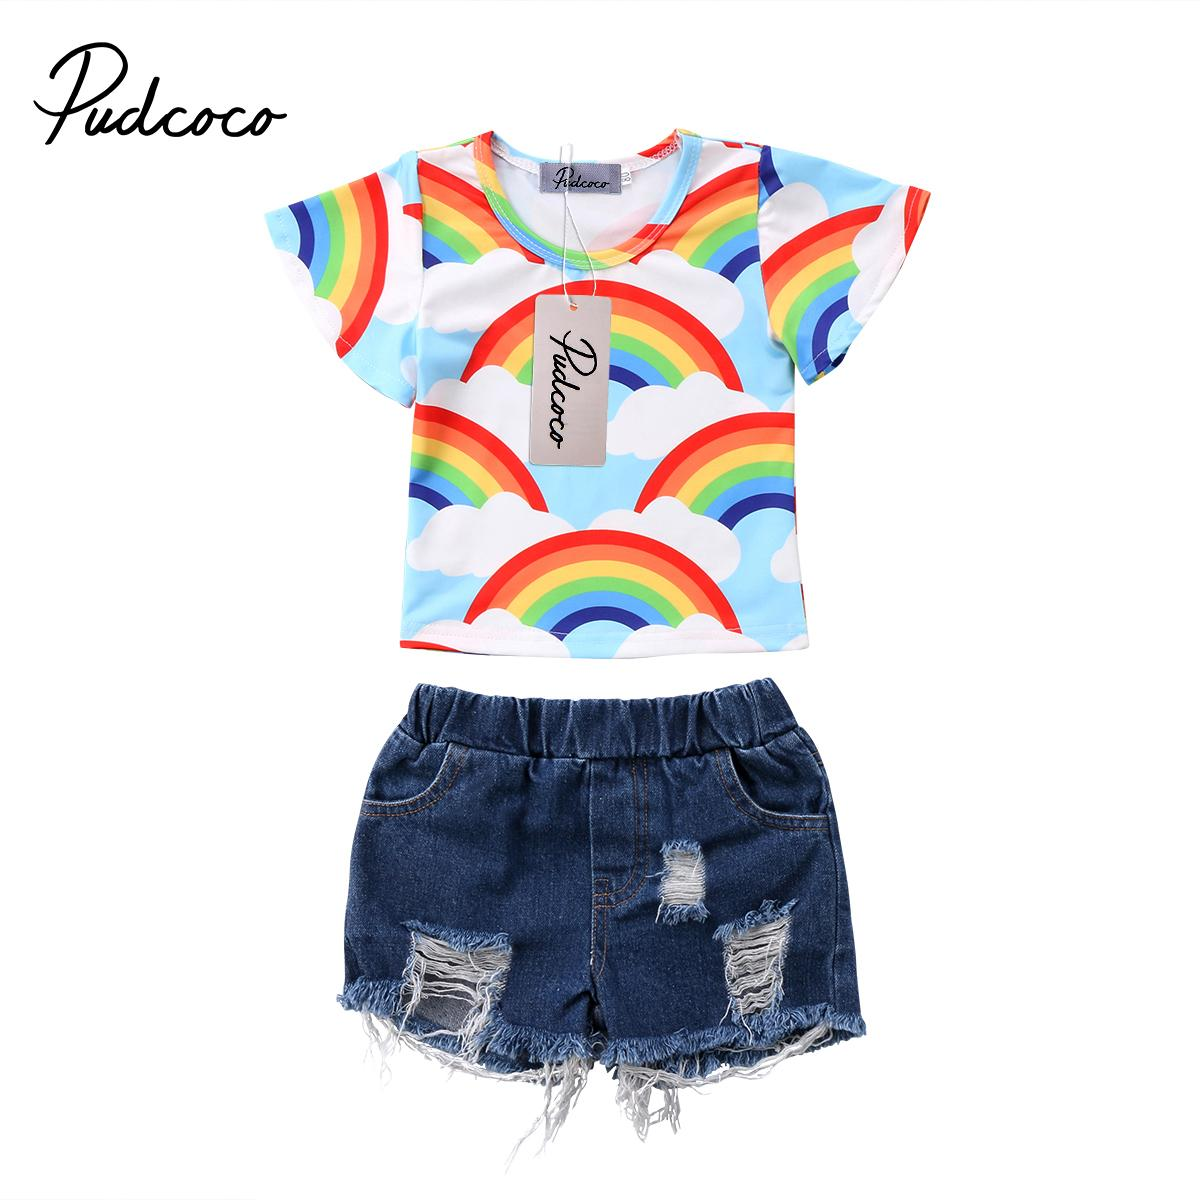 f1f614fa07 2019 2018 Brand New Infant Toddler Child Kid Baby Girls Rainbow Tops T Shirt  Hole Denim Shorts Pants Jeans Outfit Clothes 1 6T From Buycenter